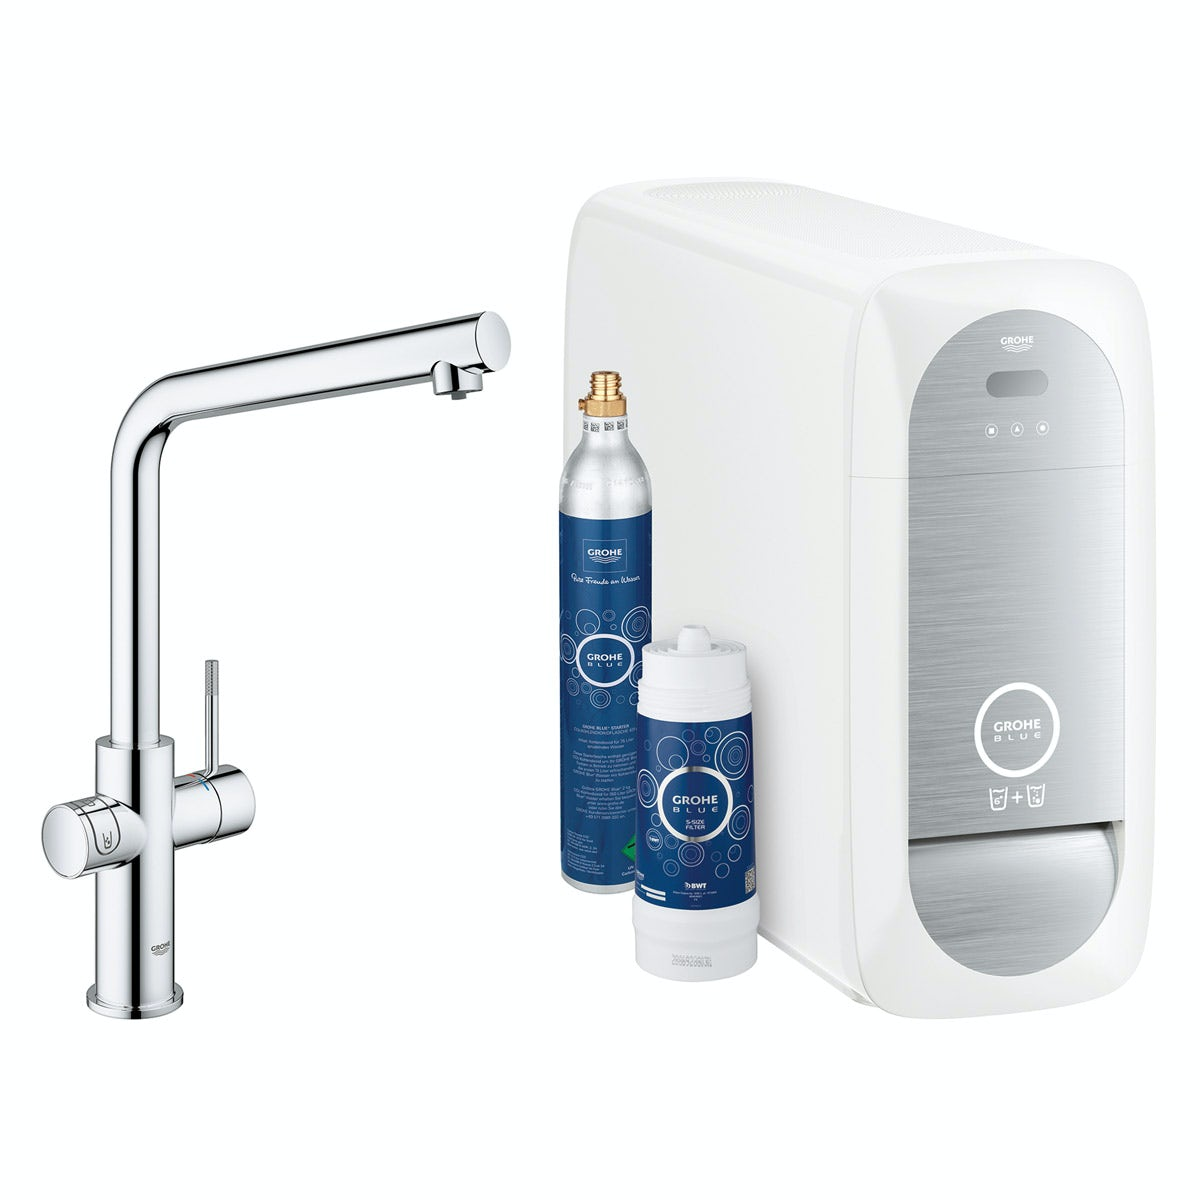 Grohe Blue Home L spout kitchen tap